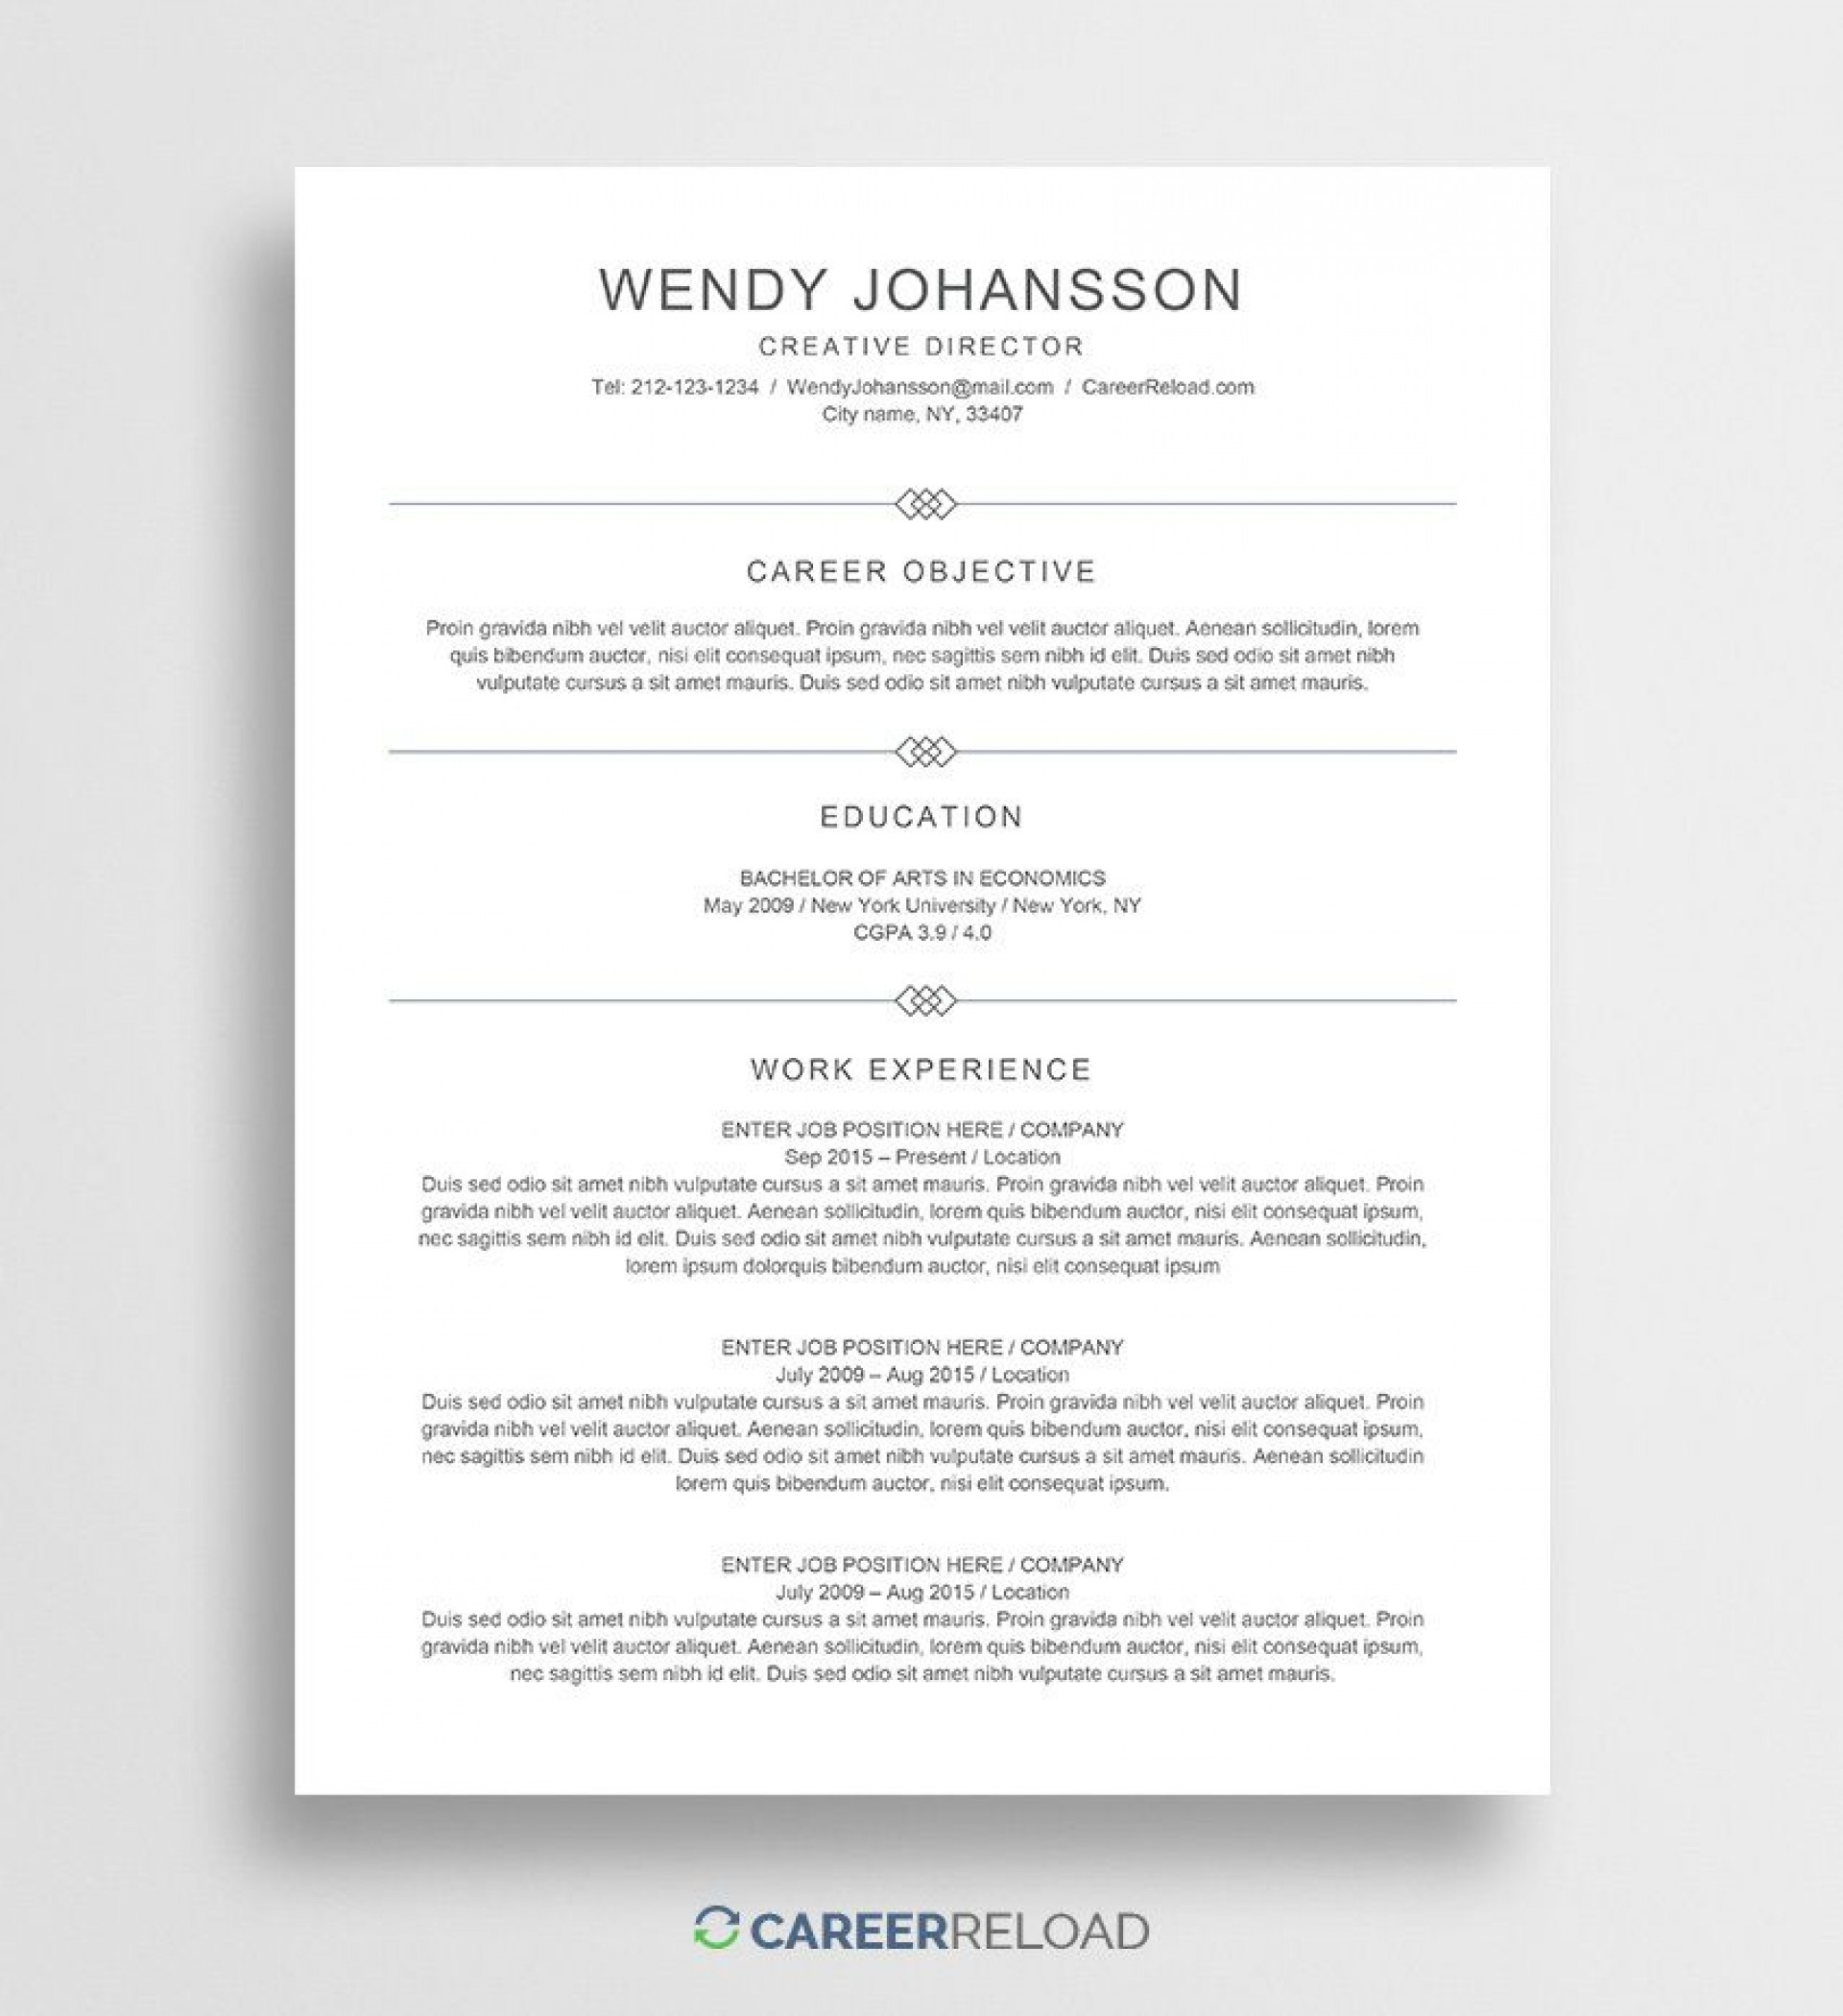 007 Stirring Entry Level Resume Template Word Example  Free For1920